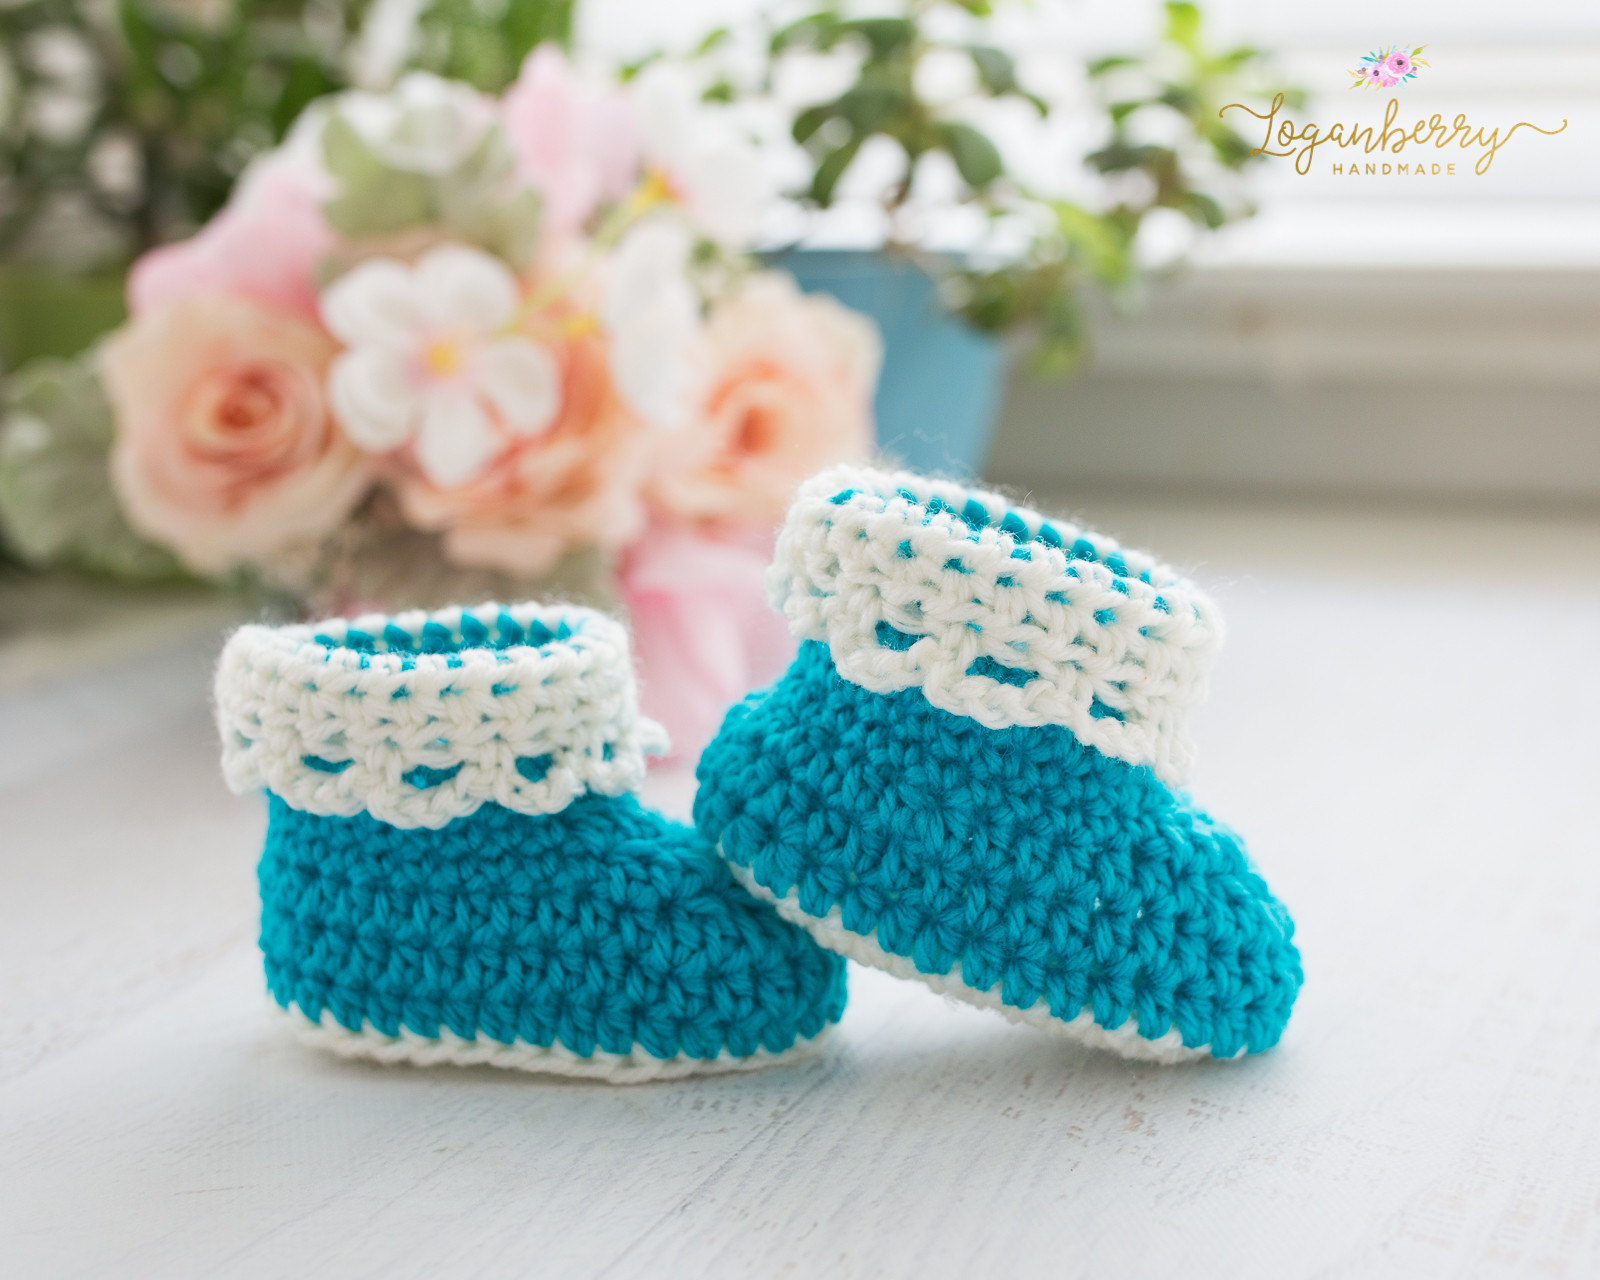 Awesome Lace Trim Baby Booties – Free Crochet Pattern Loganberry Crochet Baby Slippers Of Marvelous 50 Images Crochet Baby Slippers